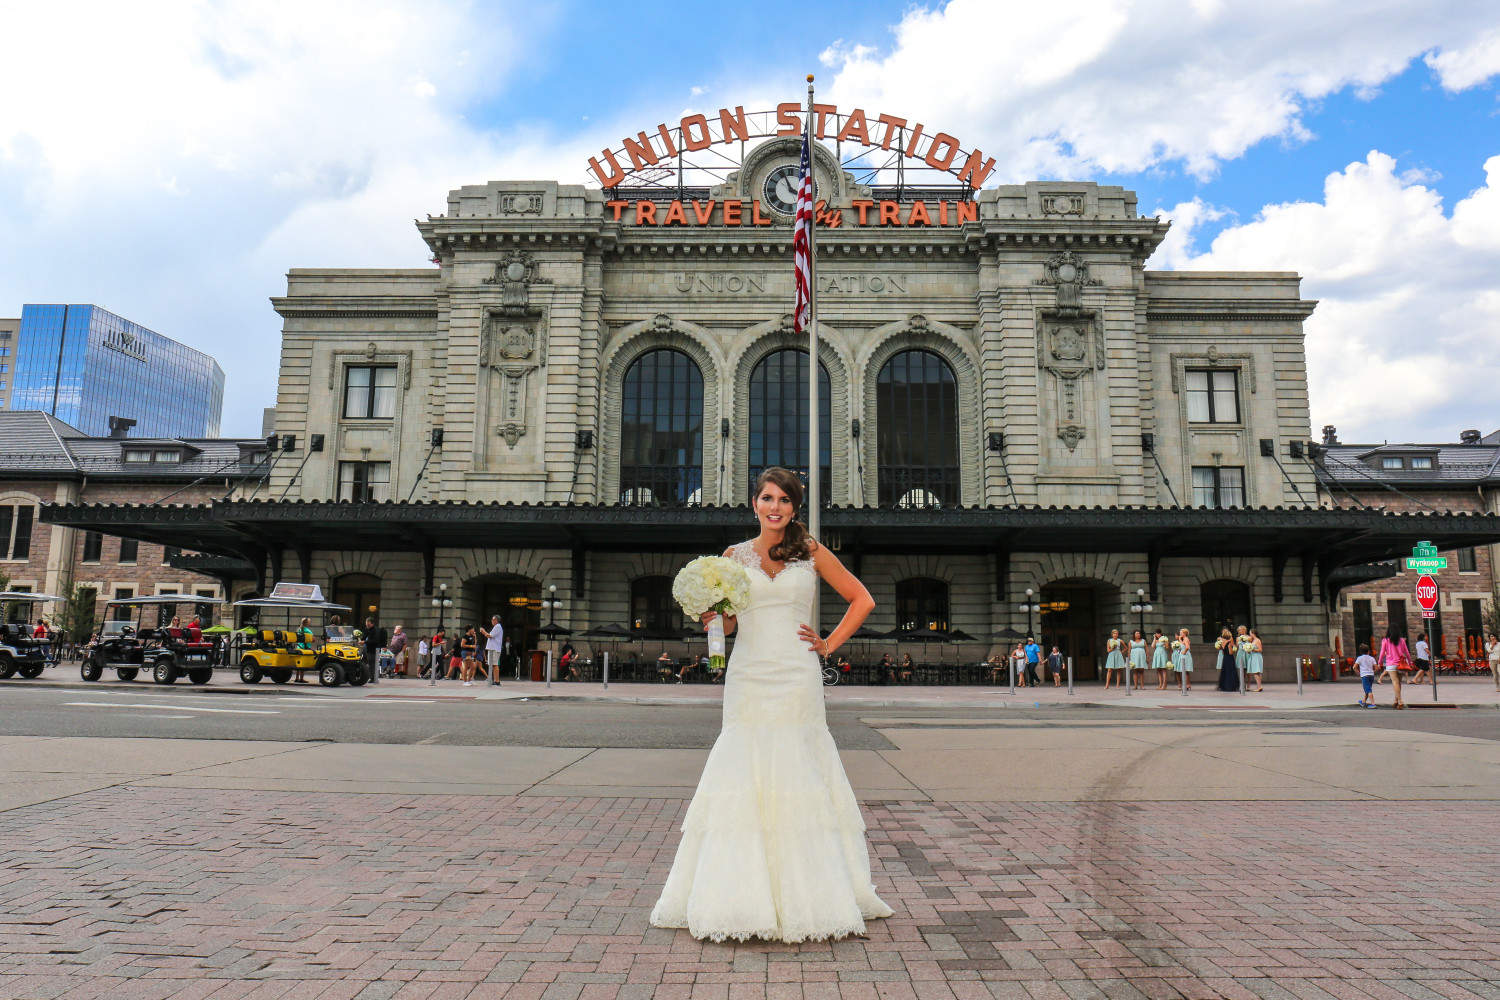 Union Station Bride www.aquinnphotography.com